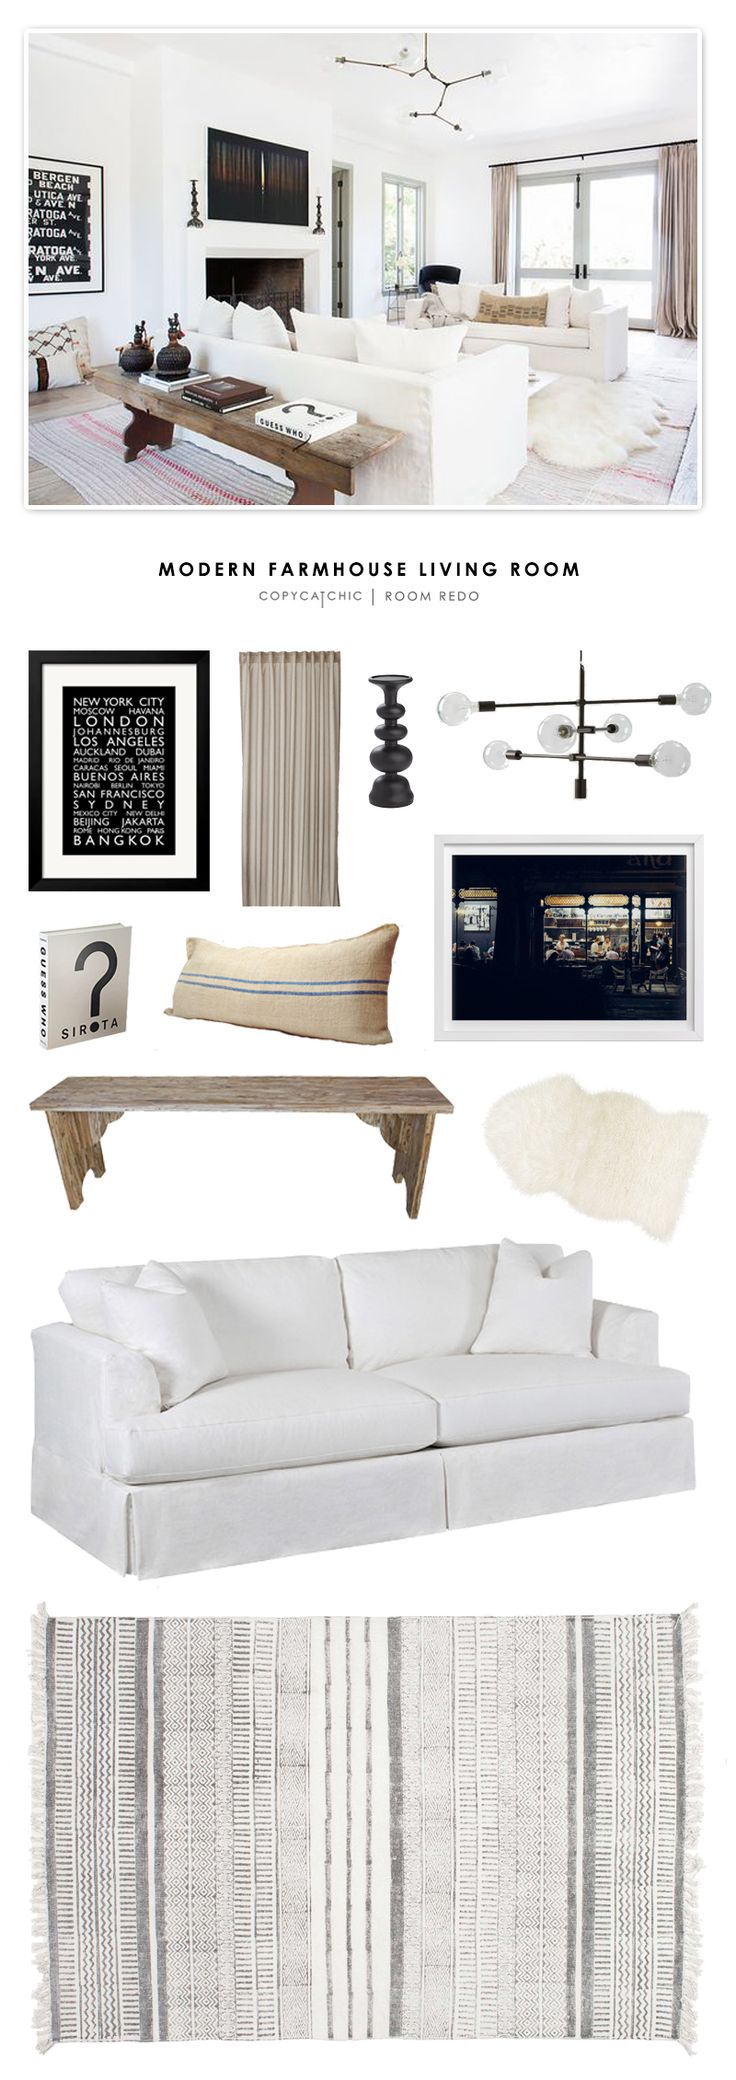 Copy Cat Chic Room Redo | Modern Farmhouse Living Room